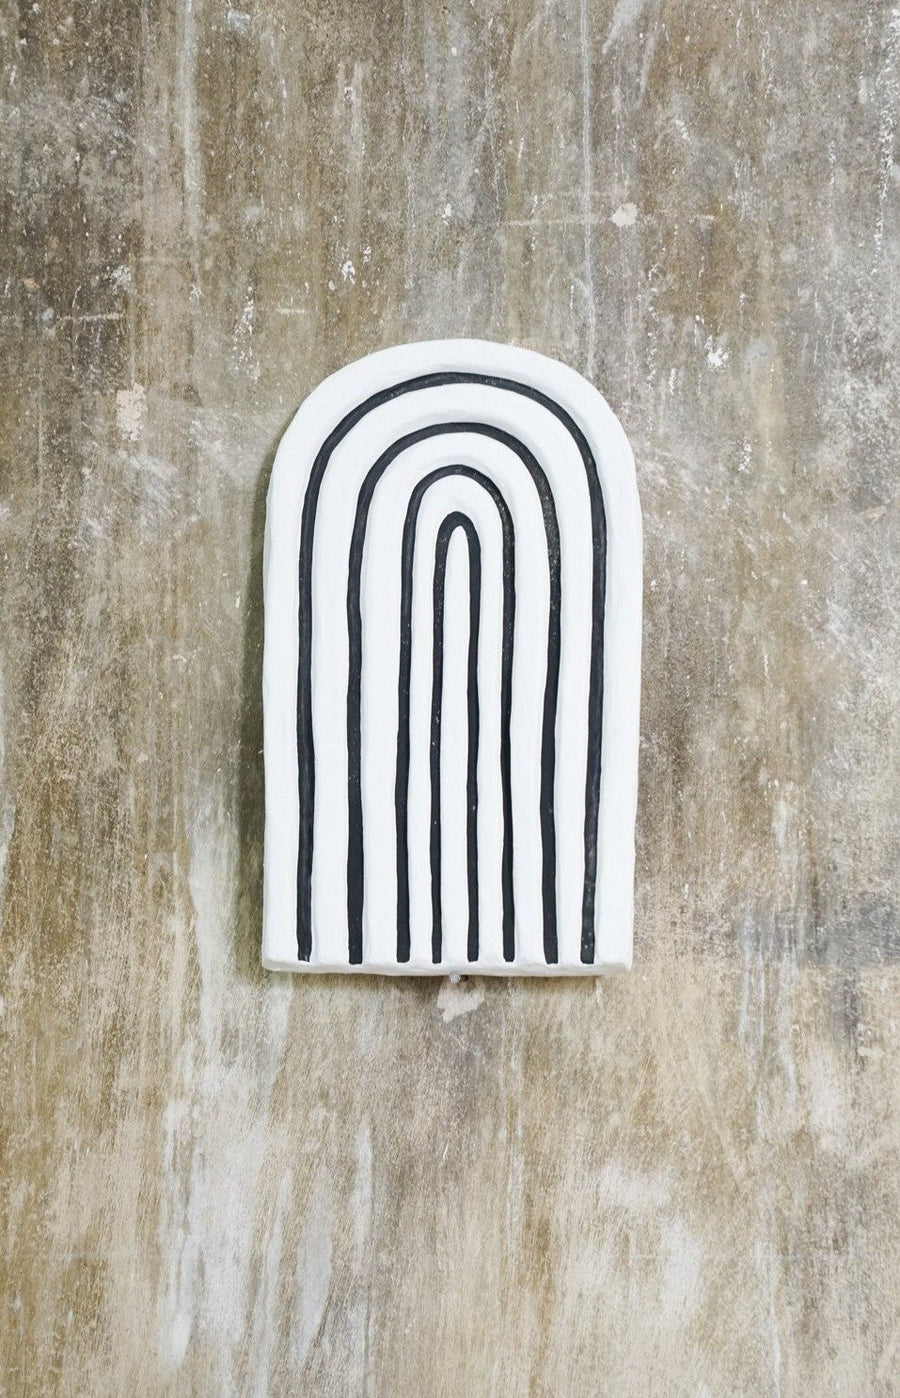 BLACK AND WHITE LONG U SHAPE WALL HANGING